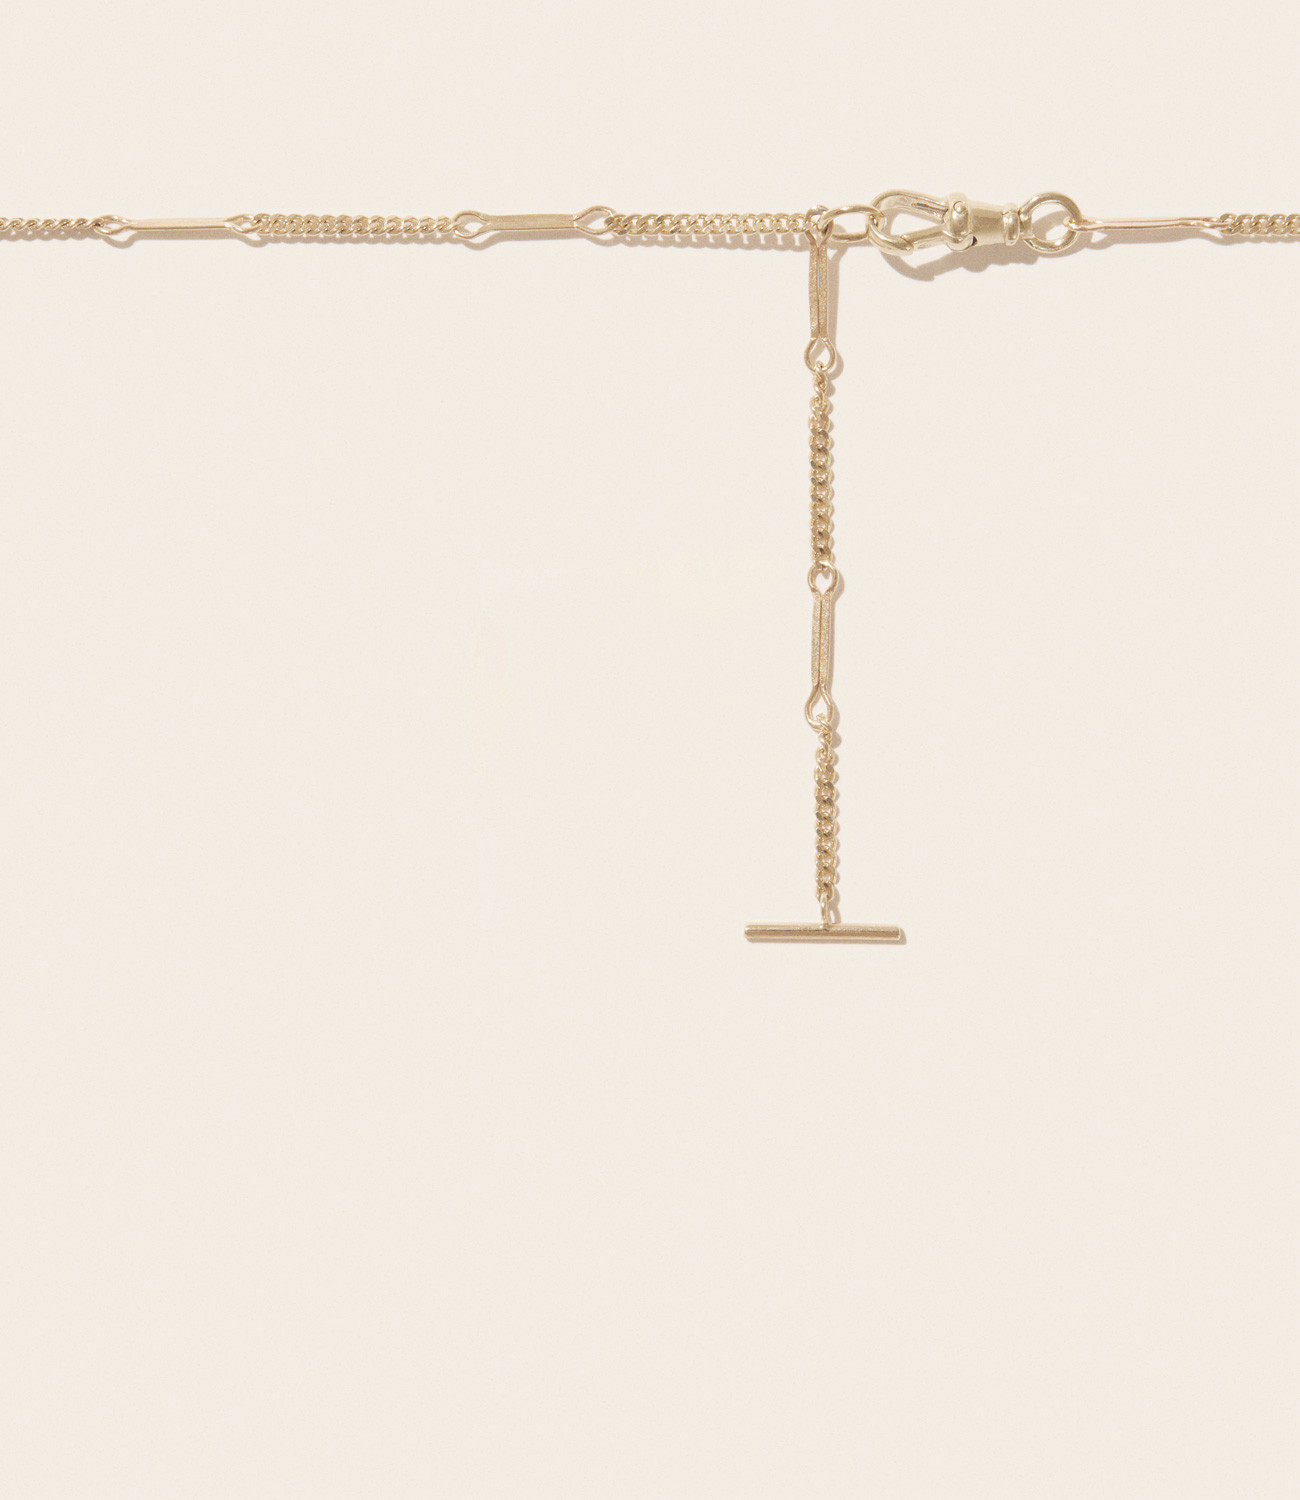 PETRA N°4 Collier